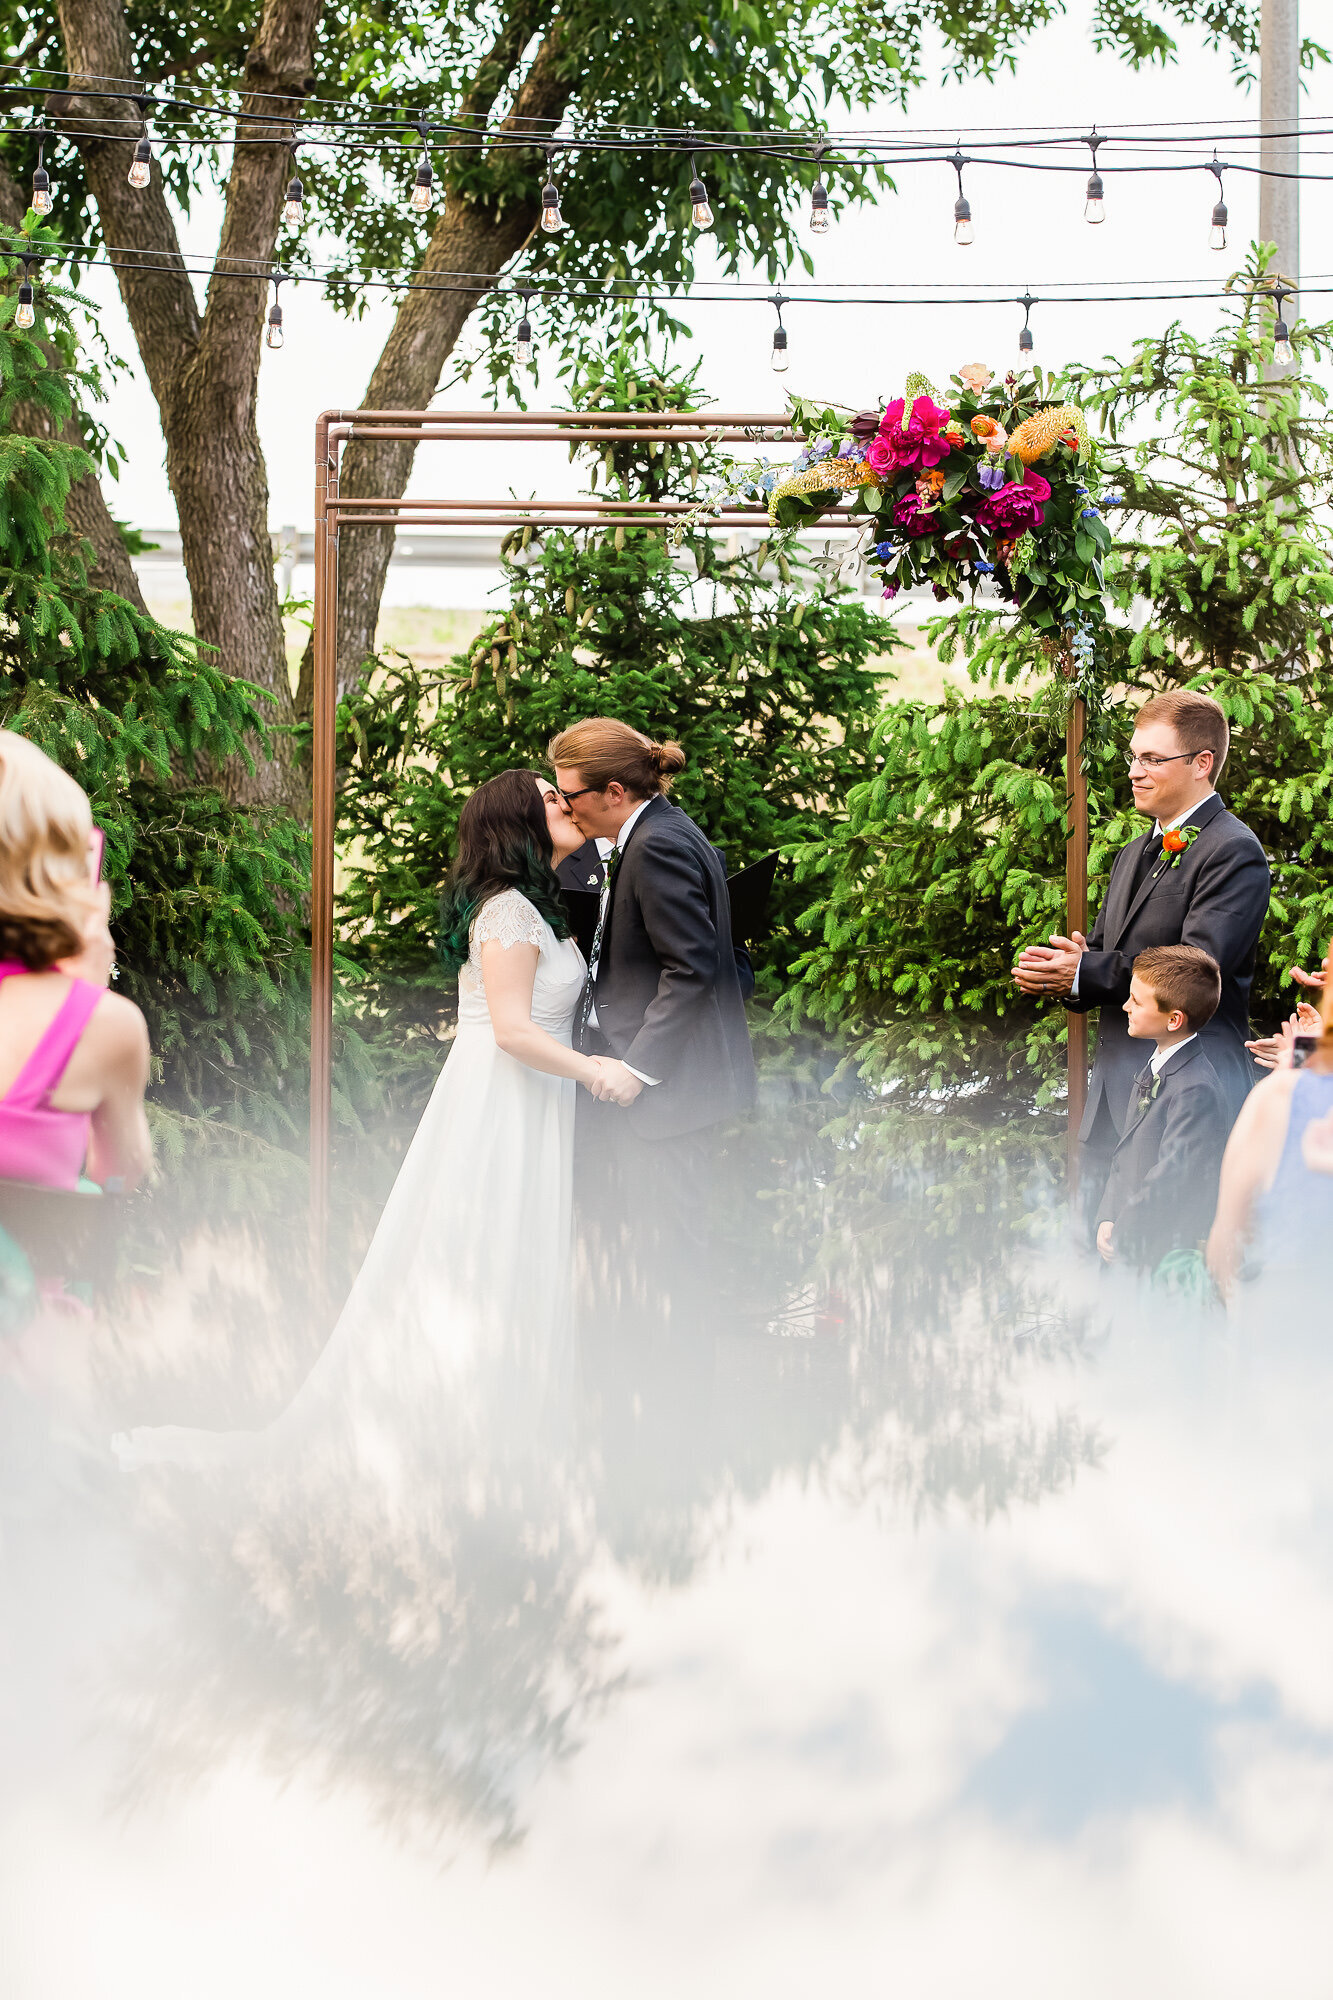 Creative photo of bride and groom's first kiss at their outdoor Wild Carrot wedding ceremony